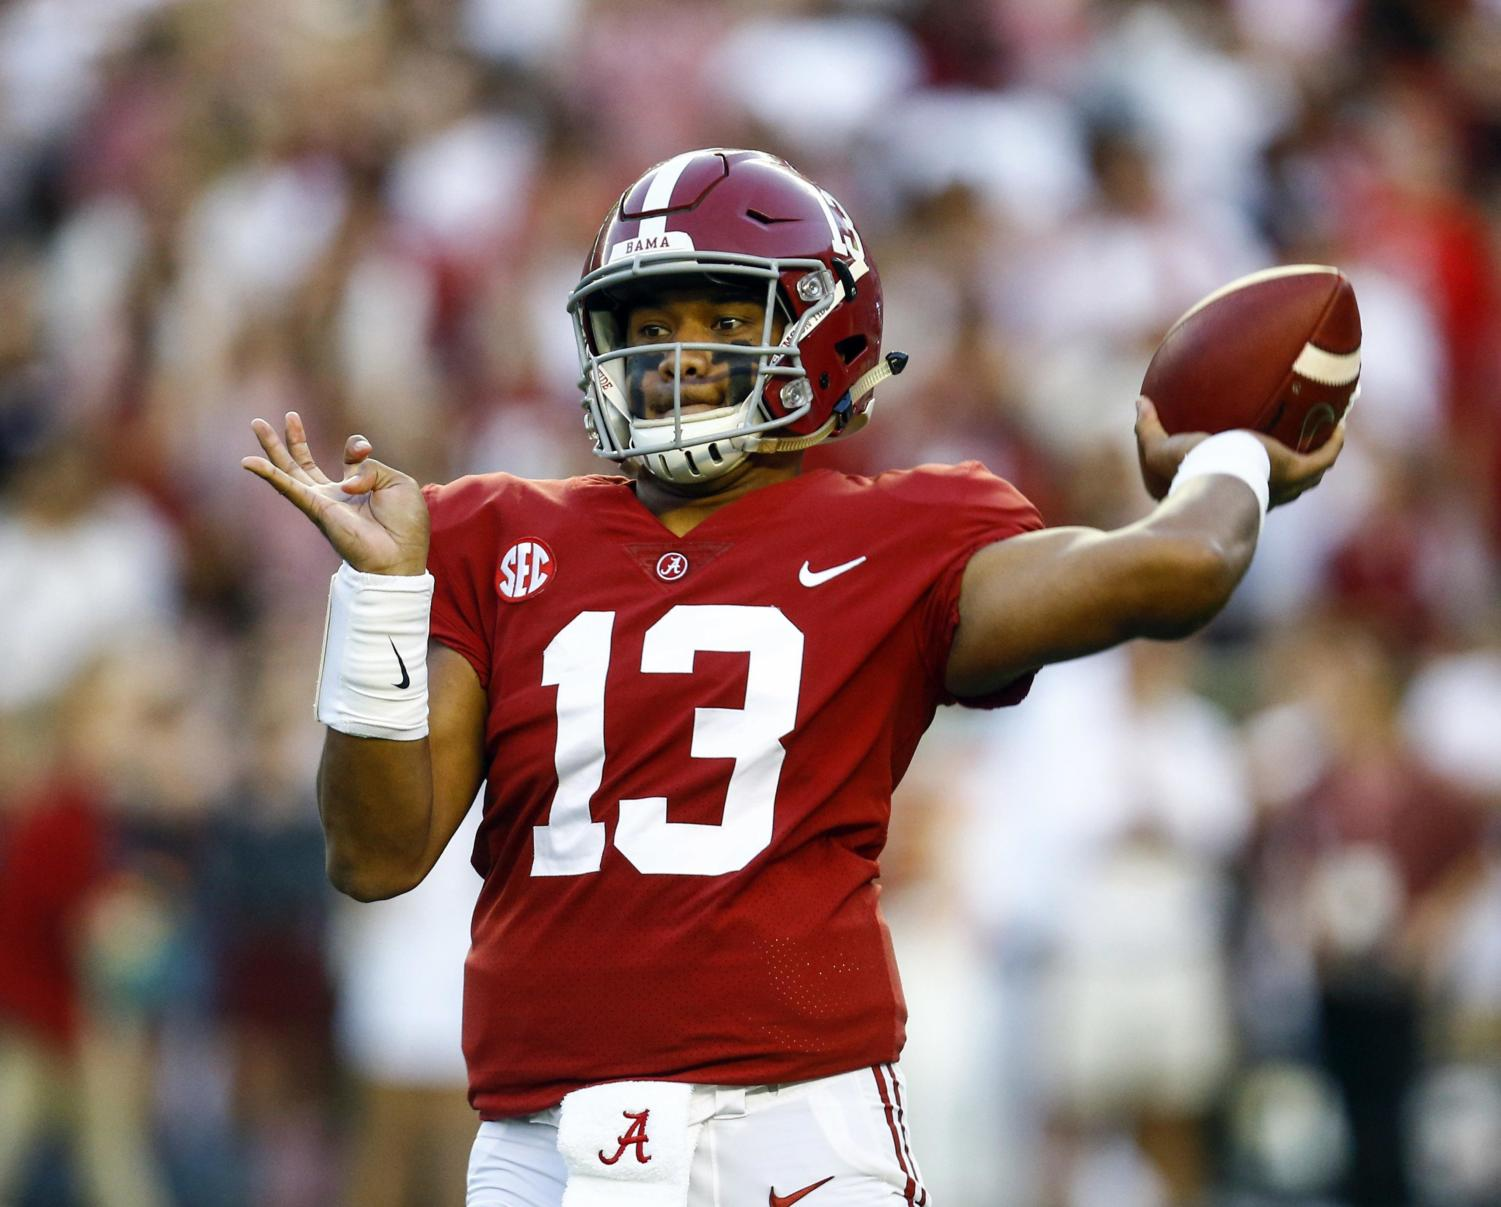 Alabama quarterback Tua Tagovailoa (13) throws a pass during the first half of the team's NCAA college football game against Missouri, Saturday, Oct. 13, 2018, in Tuscaloosa, Ala. (AP Photo/Butch Dill) ORG XMIT: ALBD102